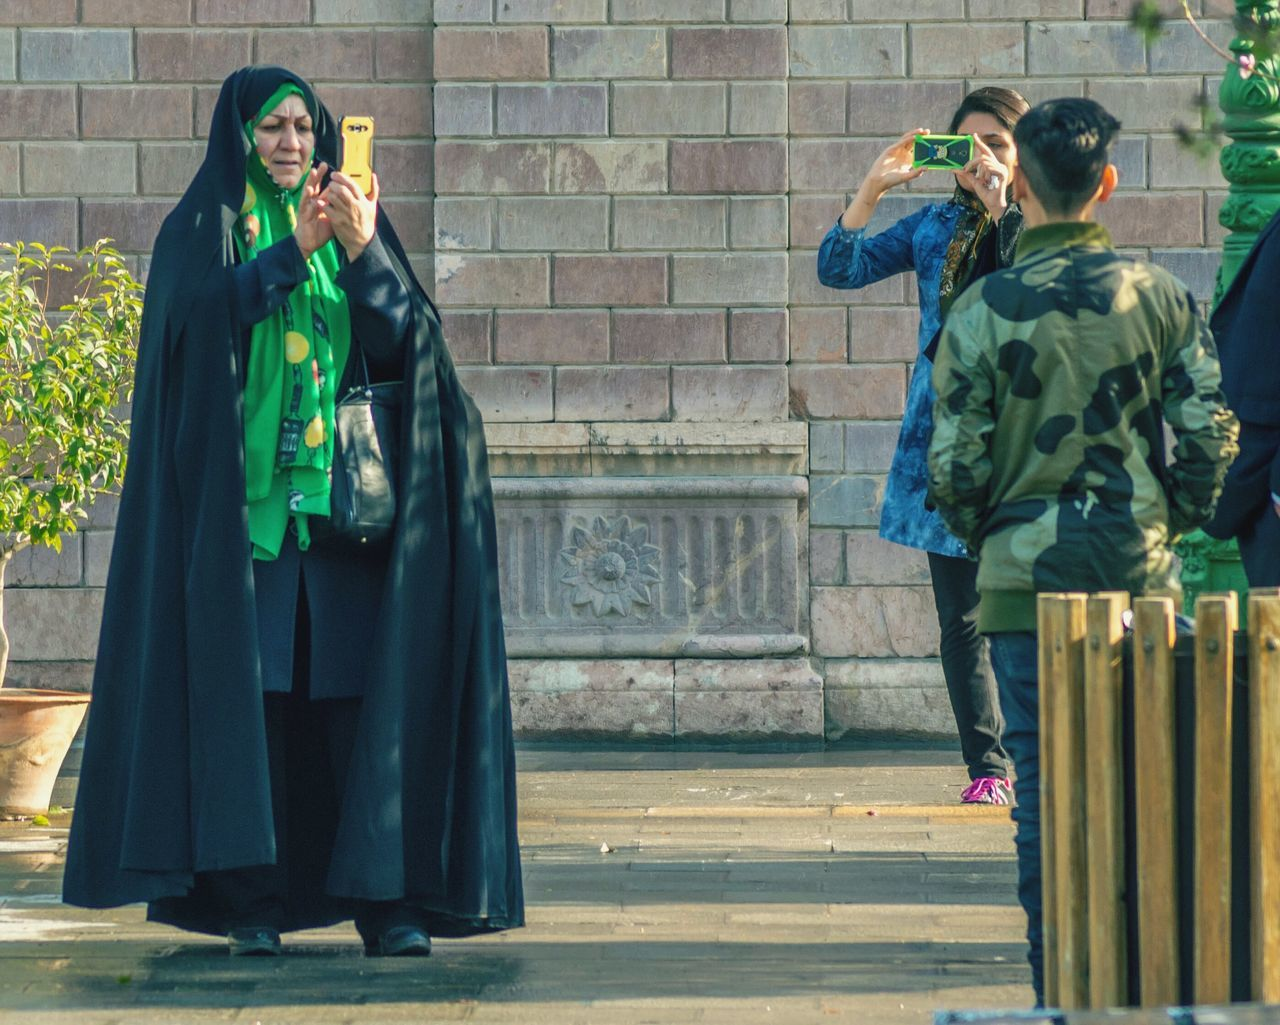 Adult Outdoors People Iranian Golestan Palace Young And Old Telephonepole